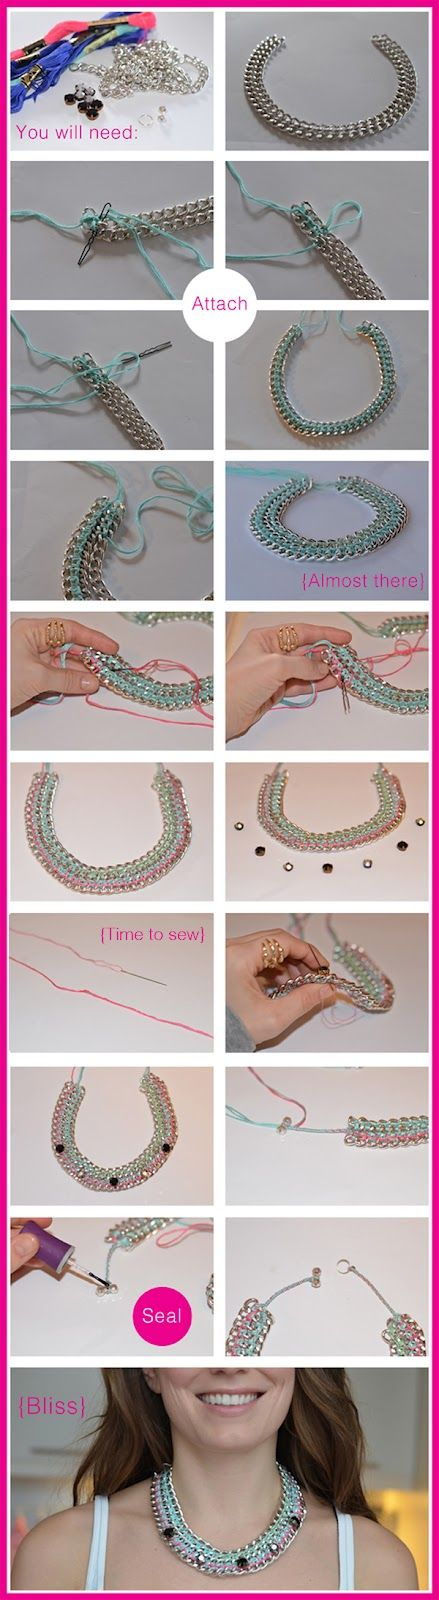 1***vs*******colorful chain necklace for spring